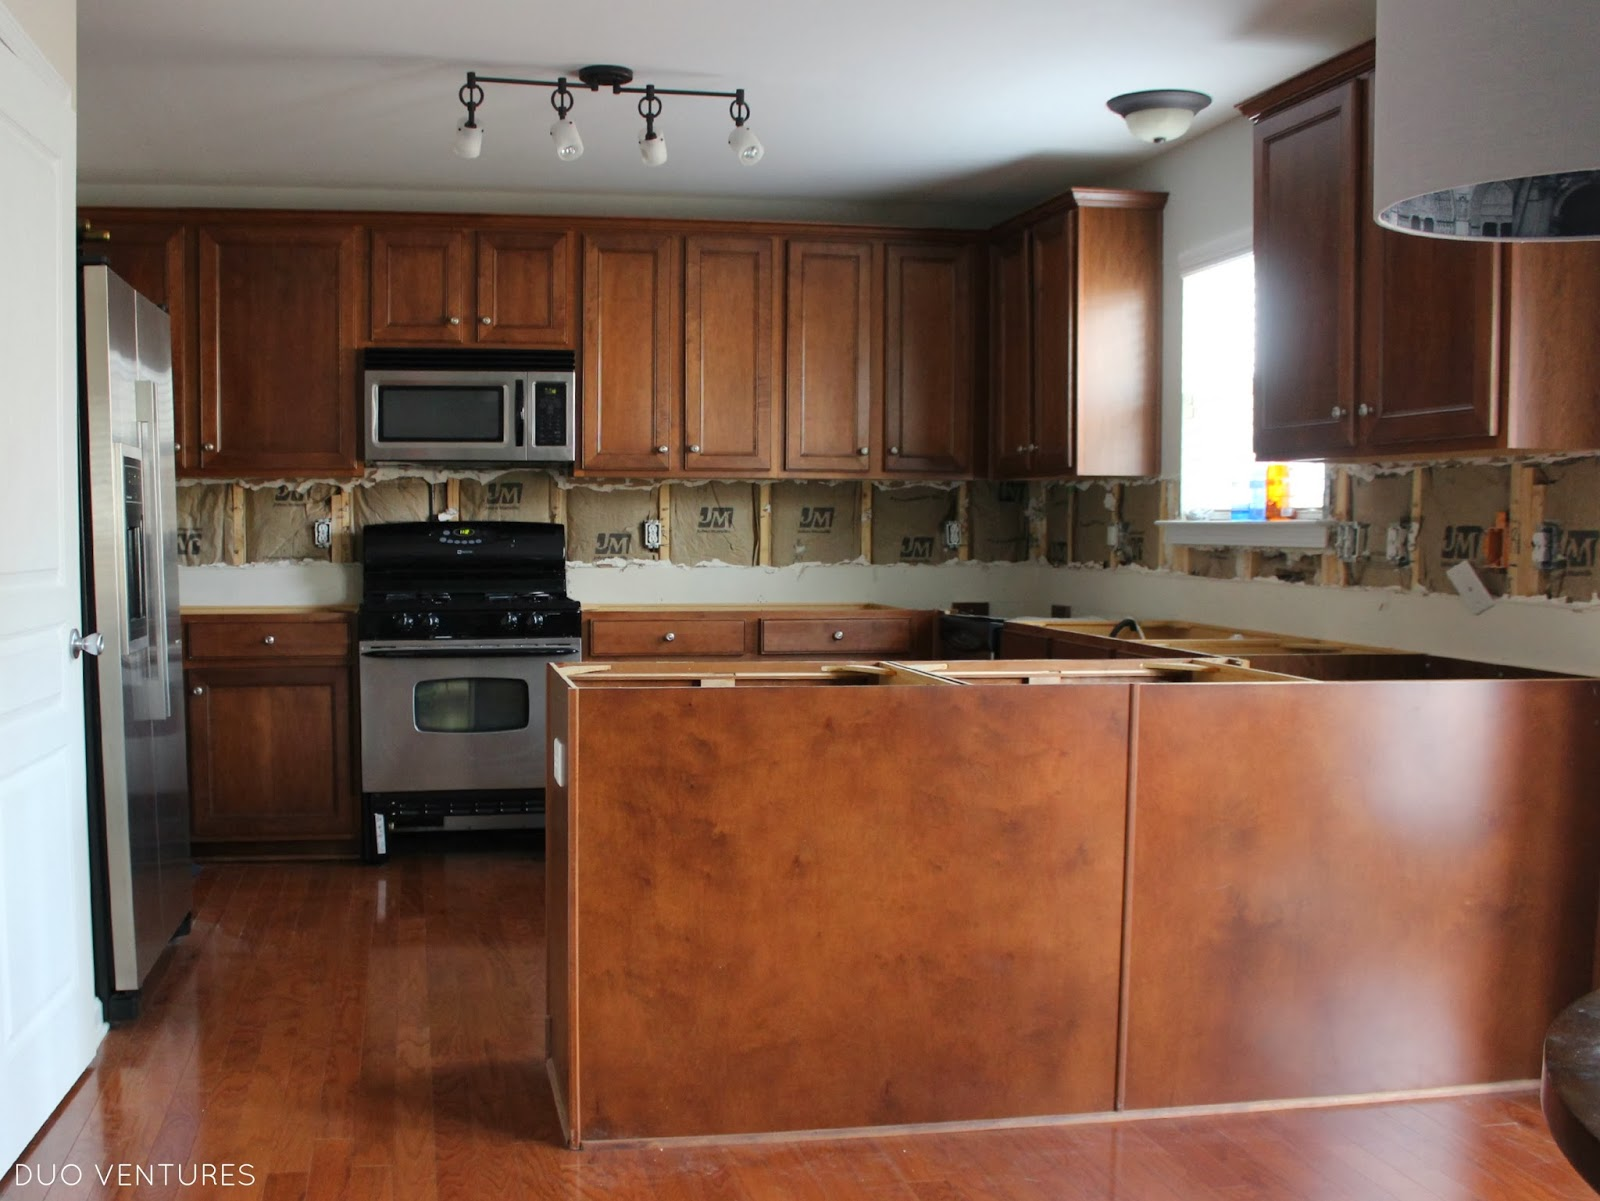 replacing counter how diy build concrete replace own covered ideas to kitchen your countertops countertop